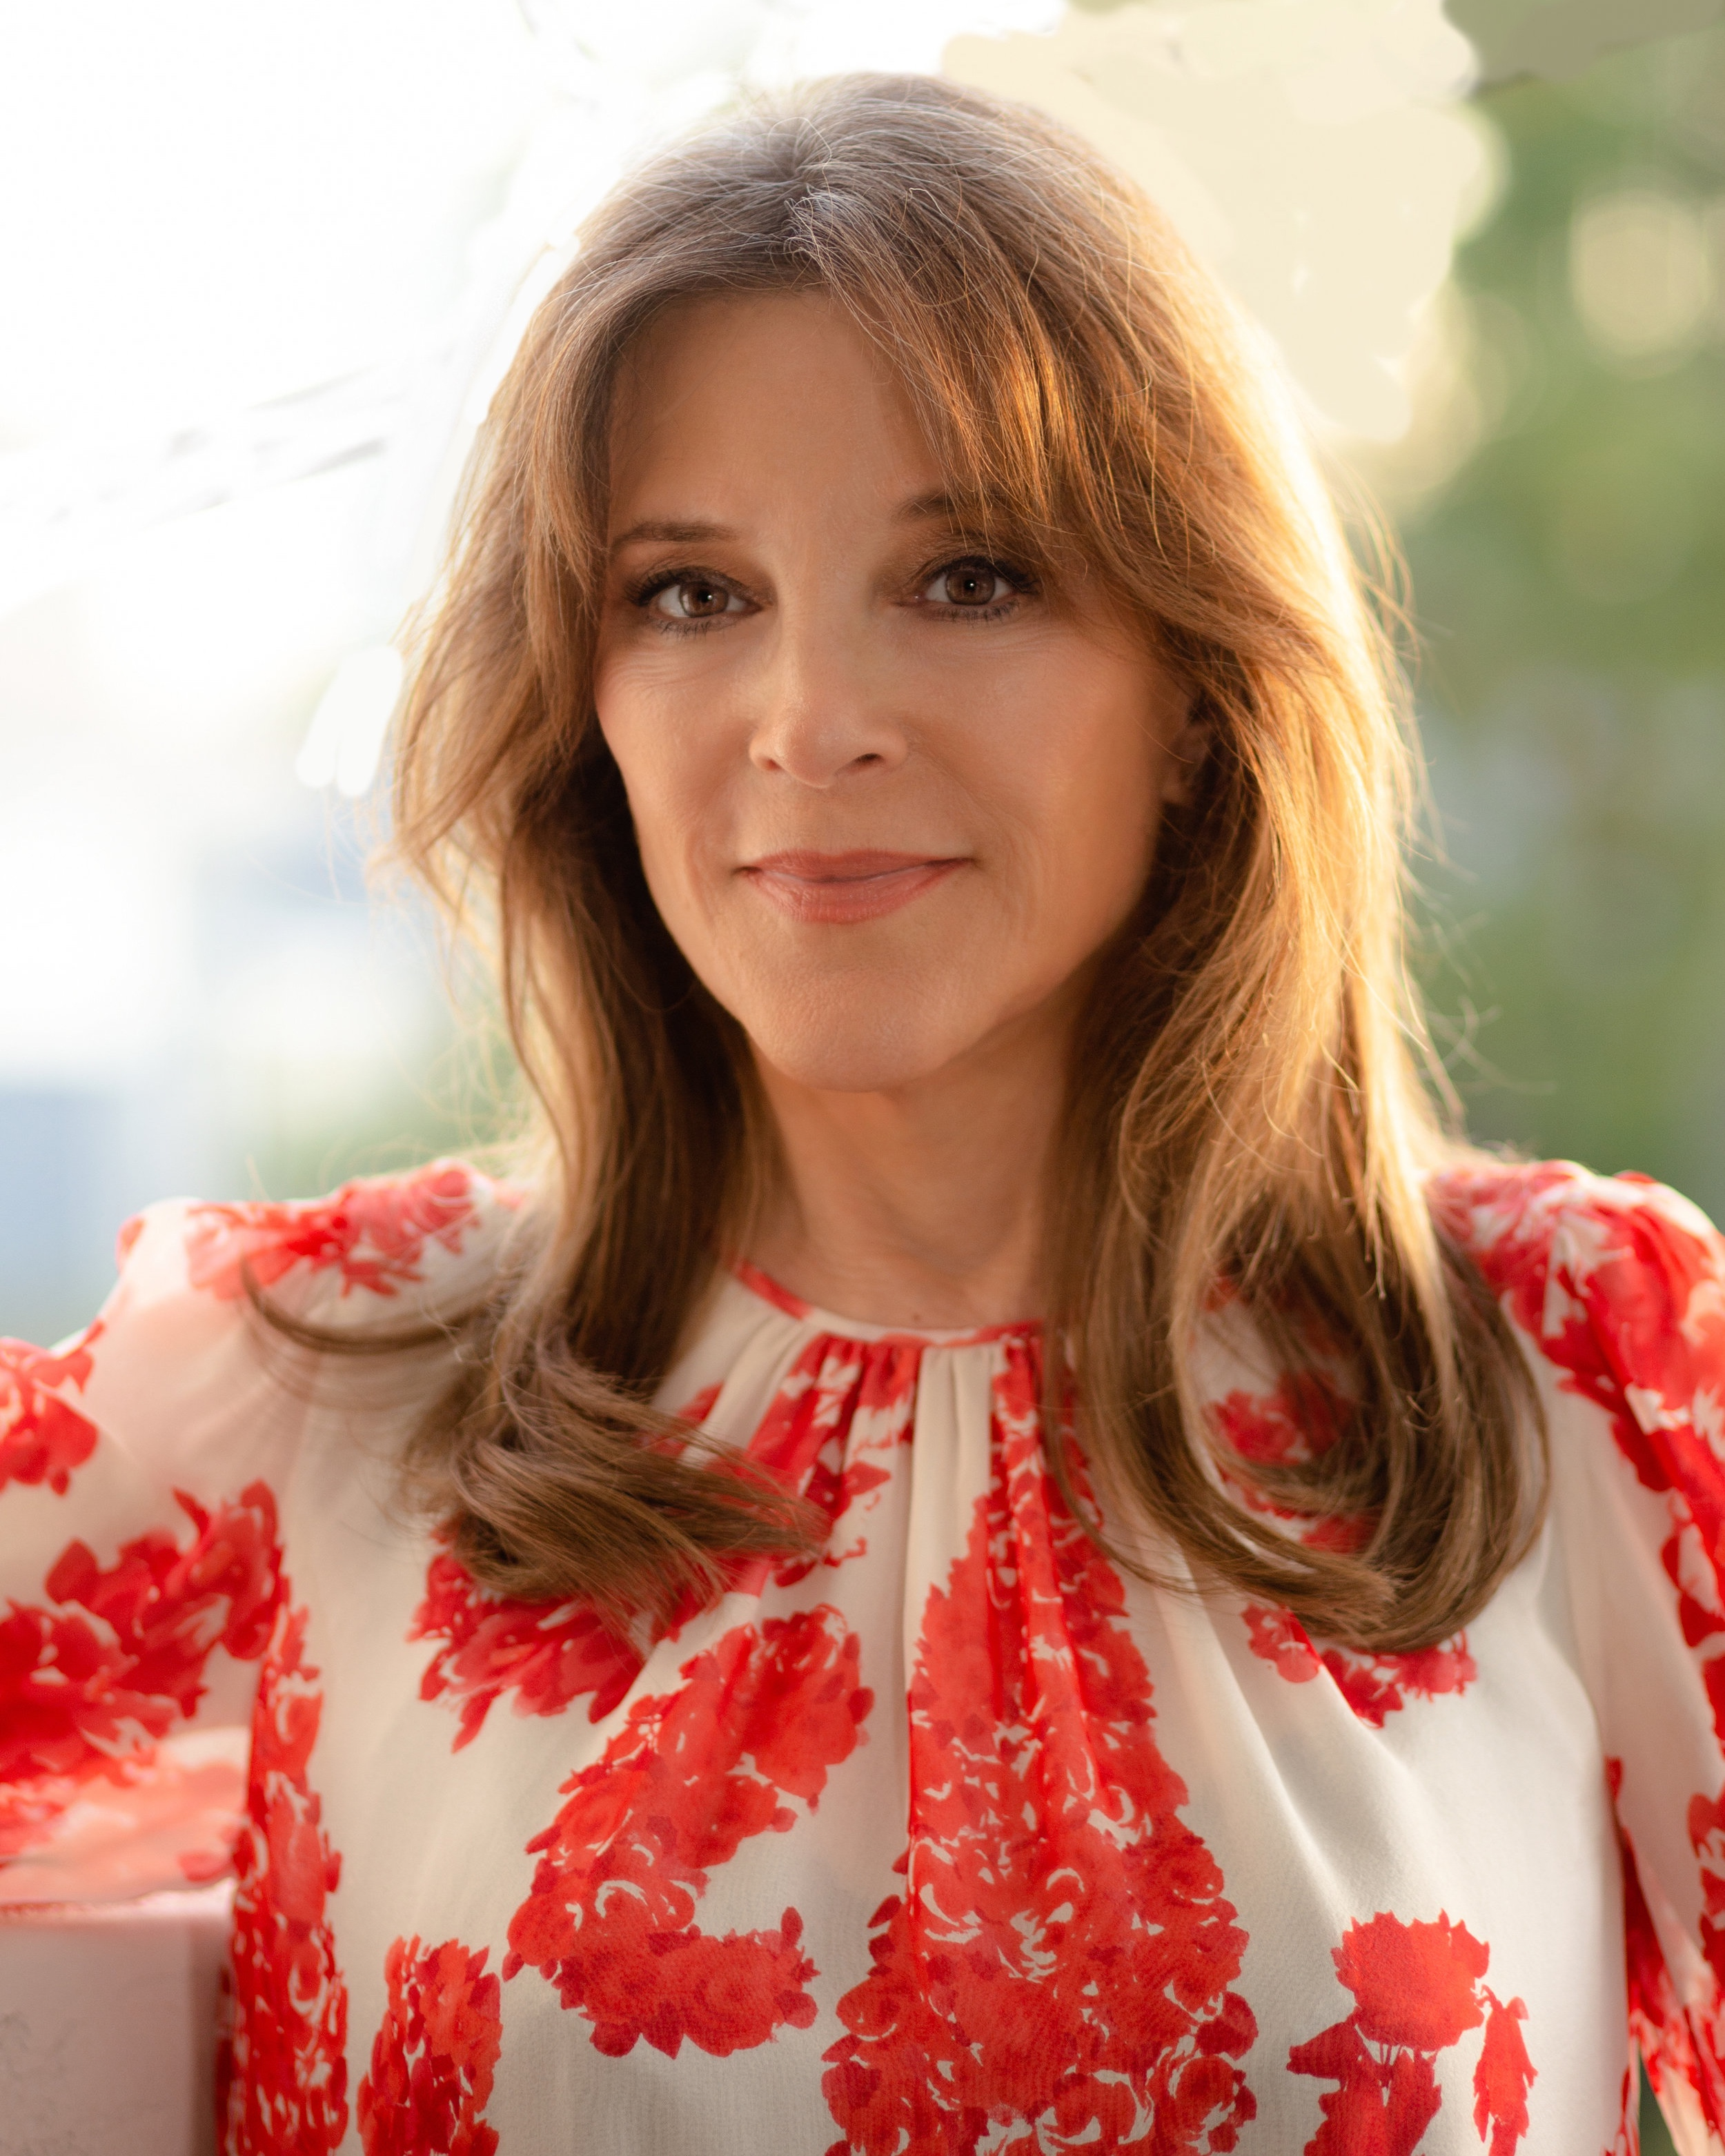 Marianne Williamson - EMAIL: contact@marianne.comPHONE: TBD